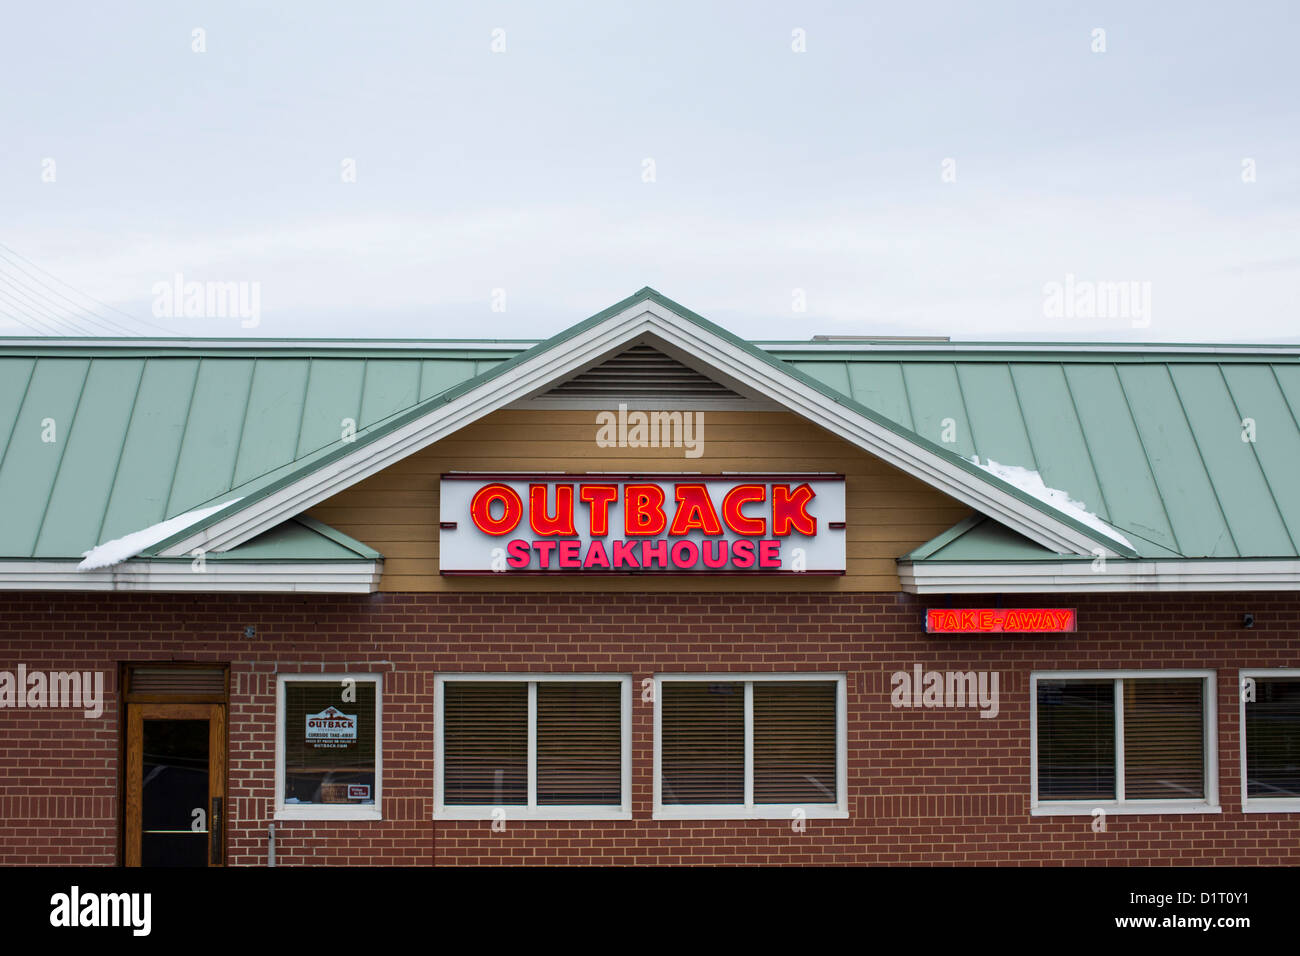 An Outback Steakhouse casual dining chain restaurant.  - Stock Image